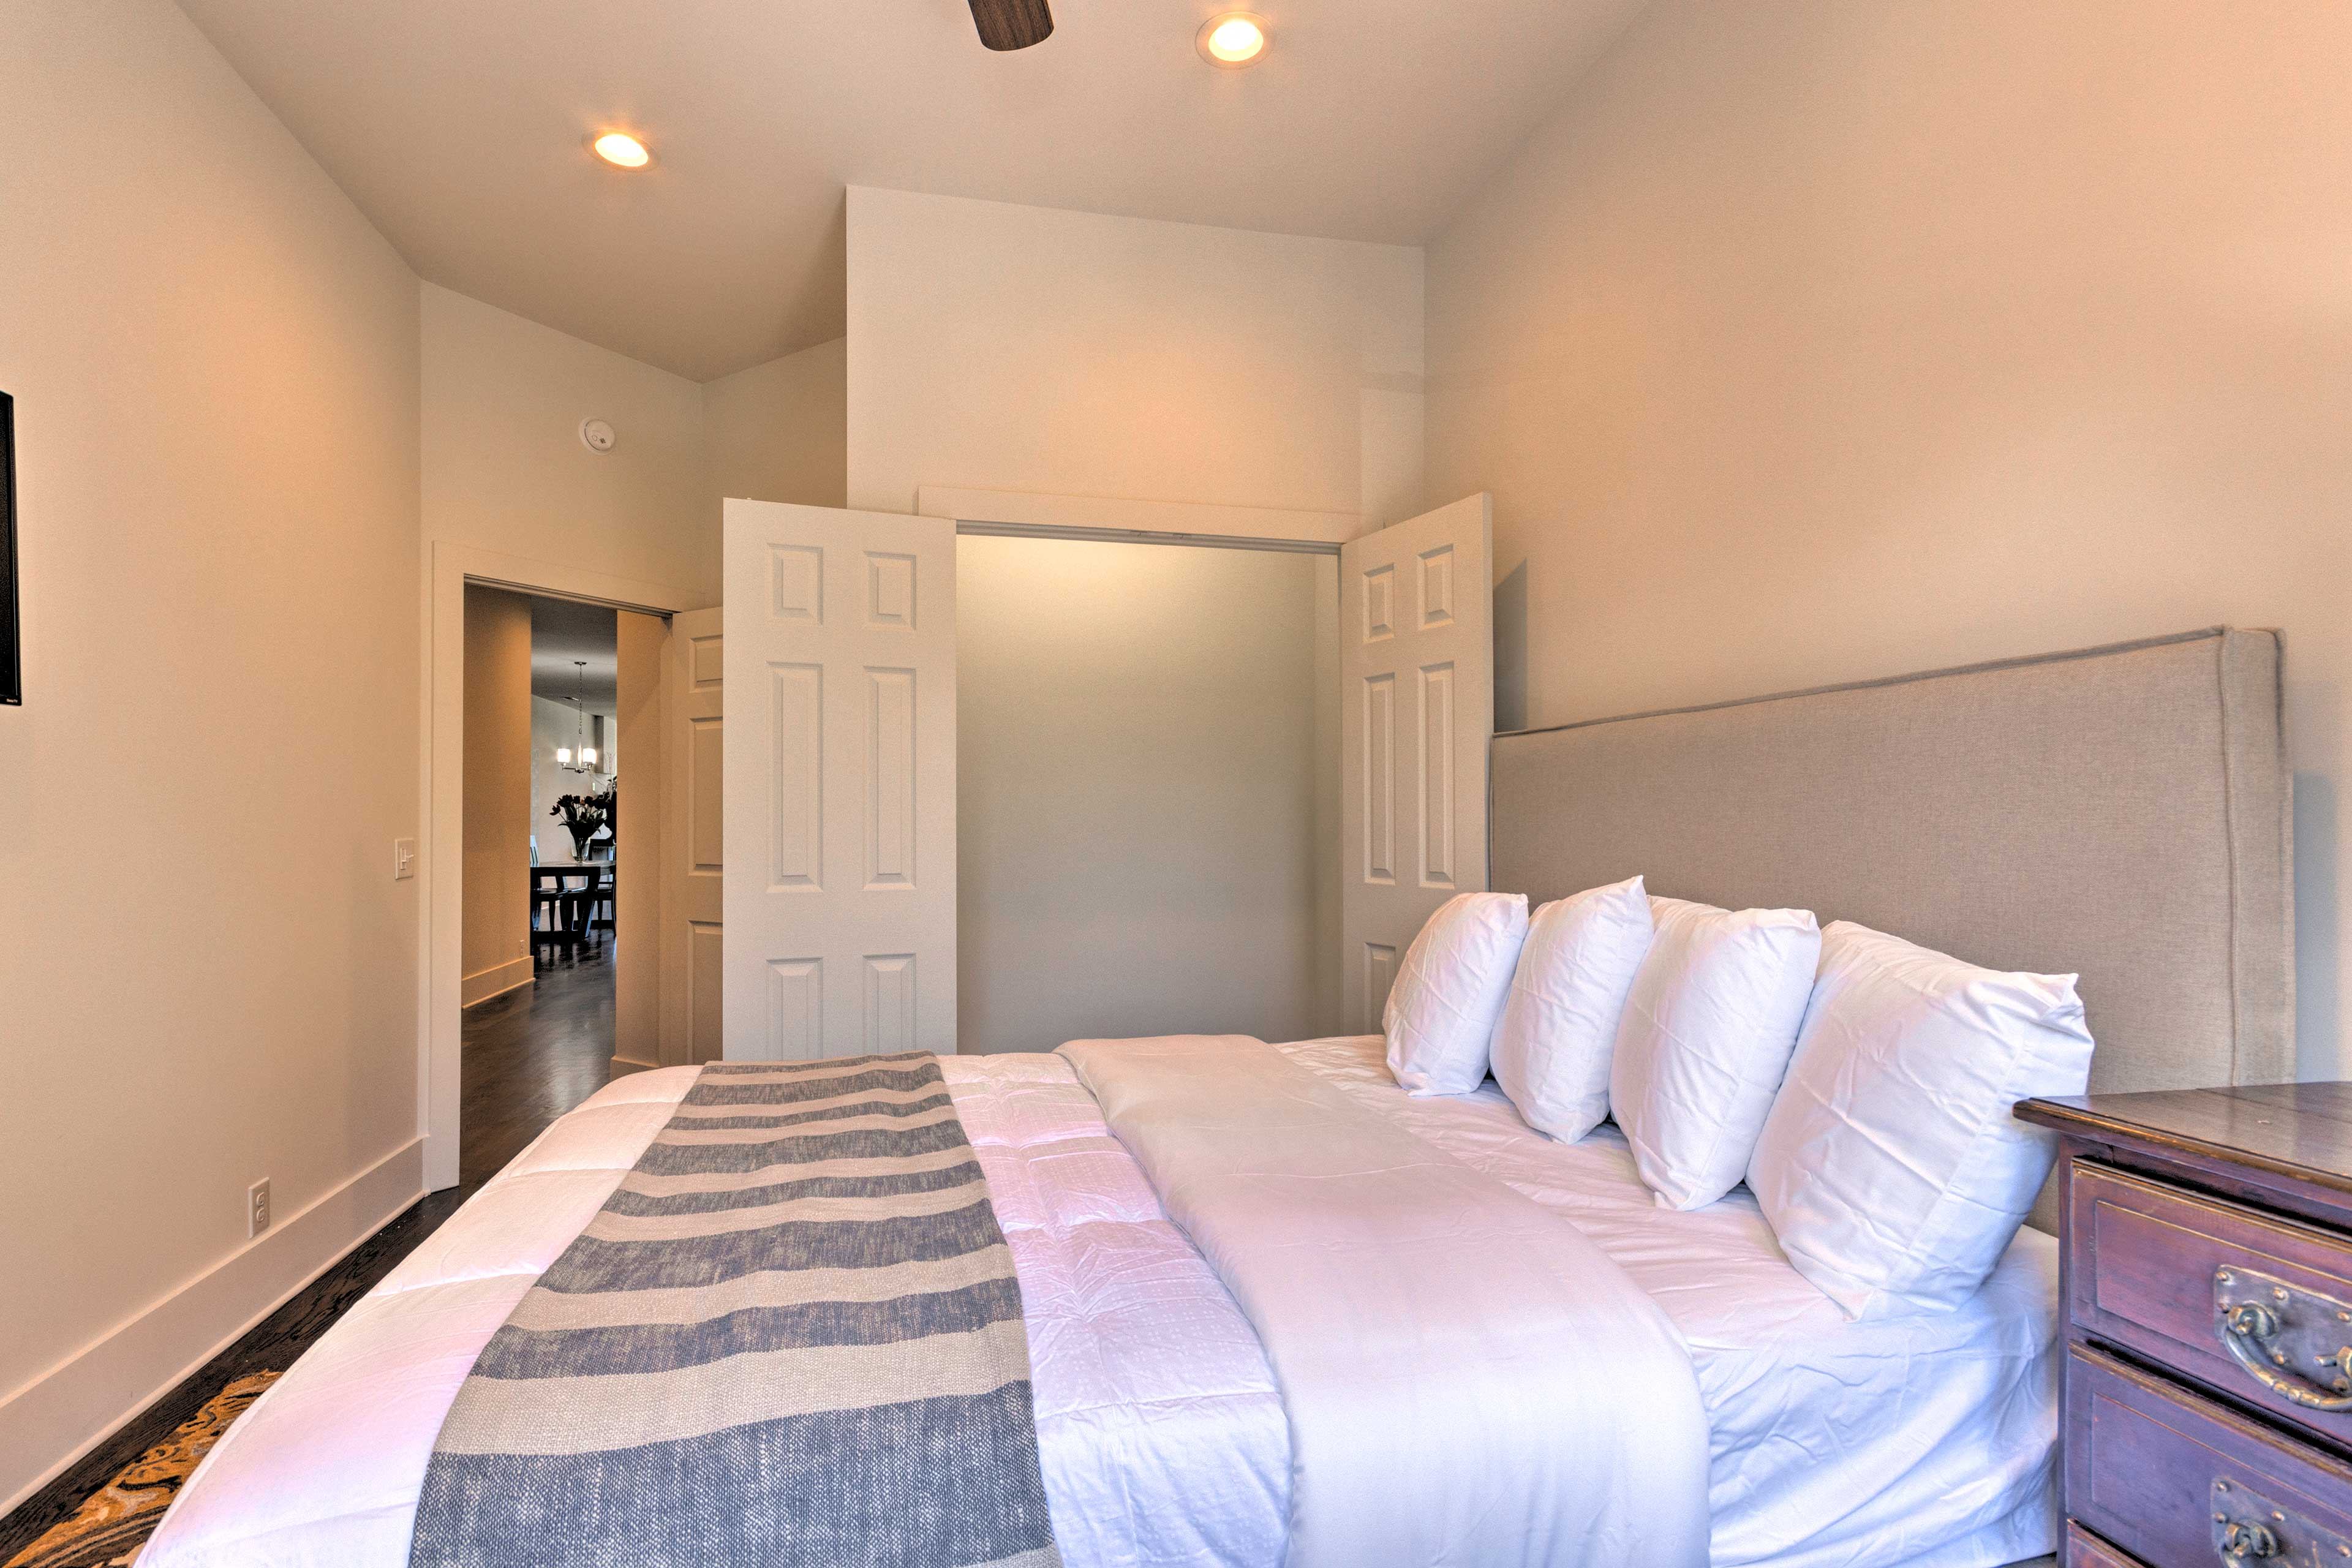 Ample closet space allows you to unpack & feel at home.